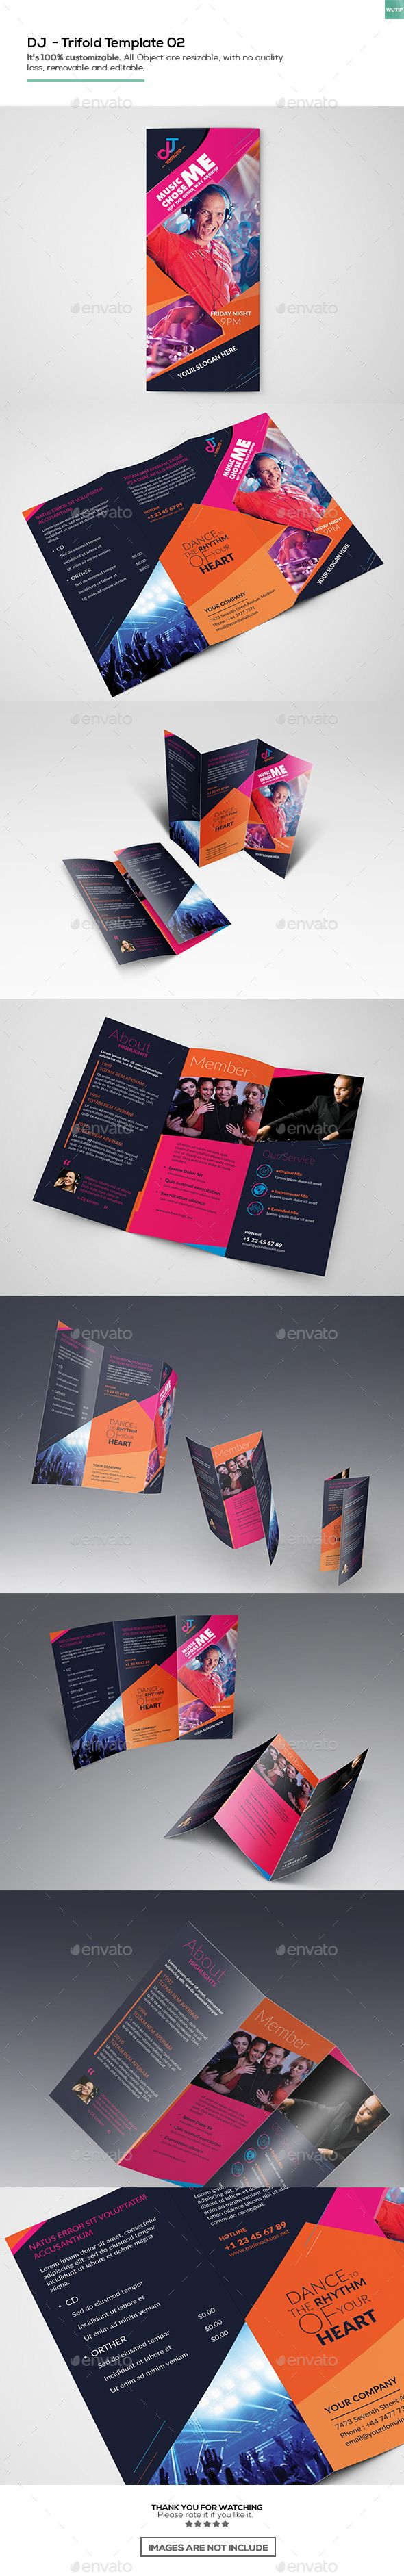 Best Leaflet Maker Ideas On Pinterest Simple Poster - Brochure templates maker